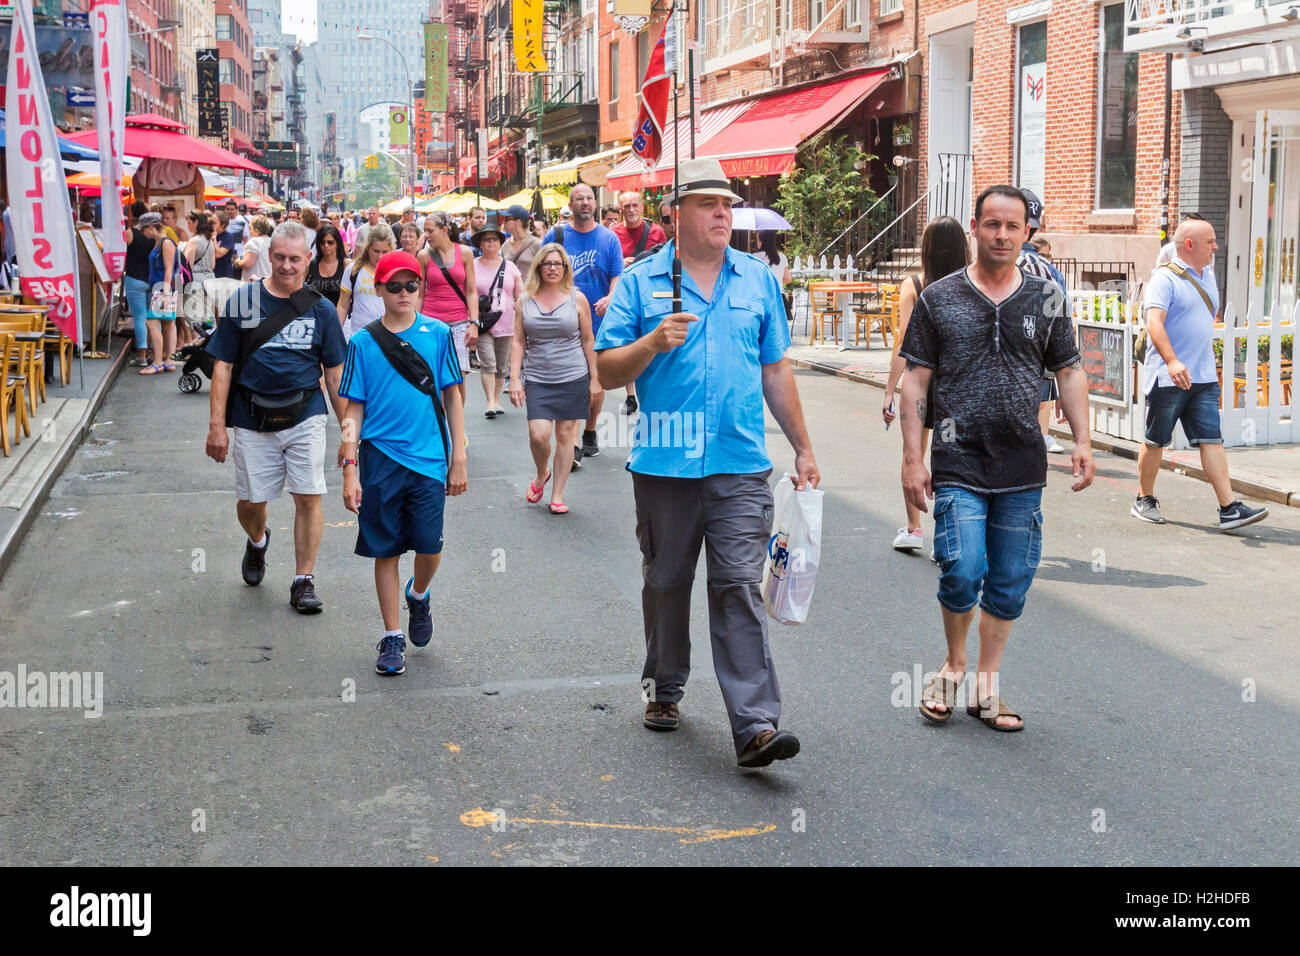 A tour guide travels with tourists walking in Little Italy, New York City. - Stock Image